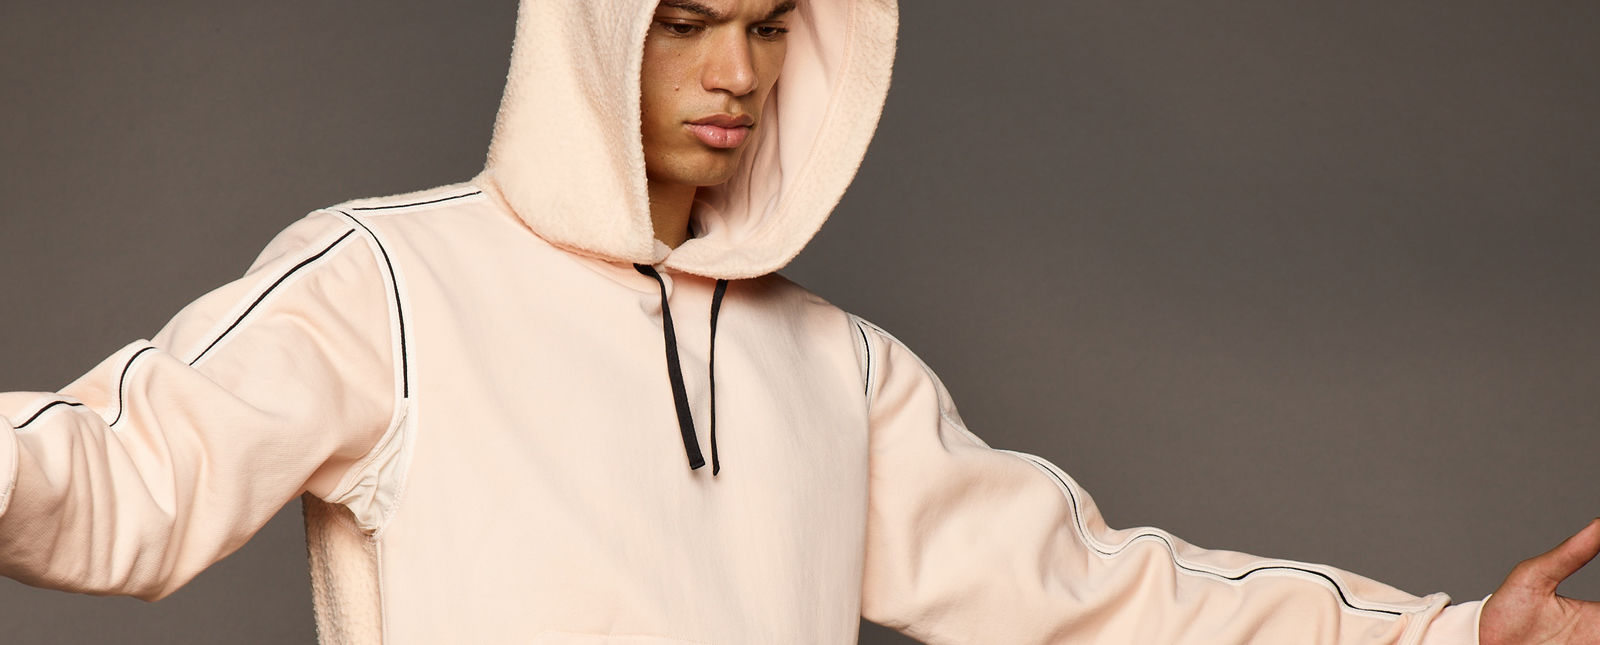 Model wearing a light peach hoodie with black and lighter peach line details along the edges of the shoulders and sleeves and black drawstrings at the hood